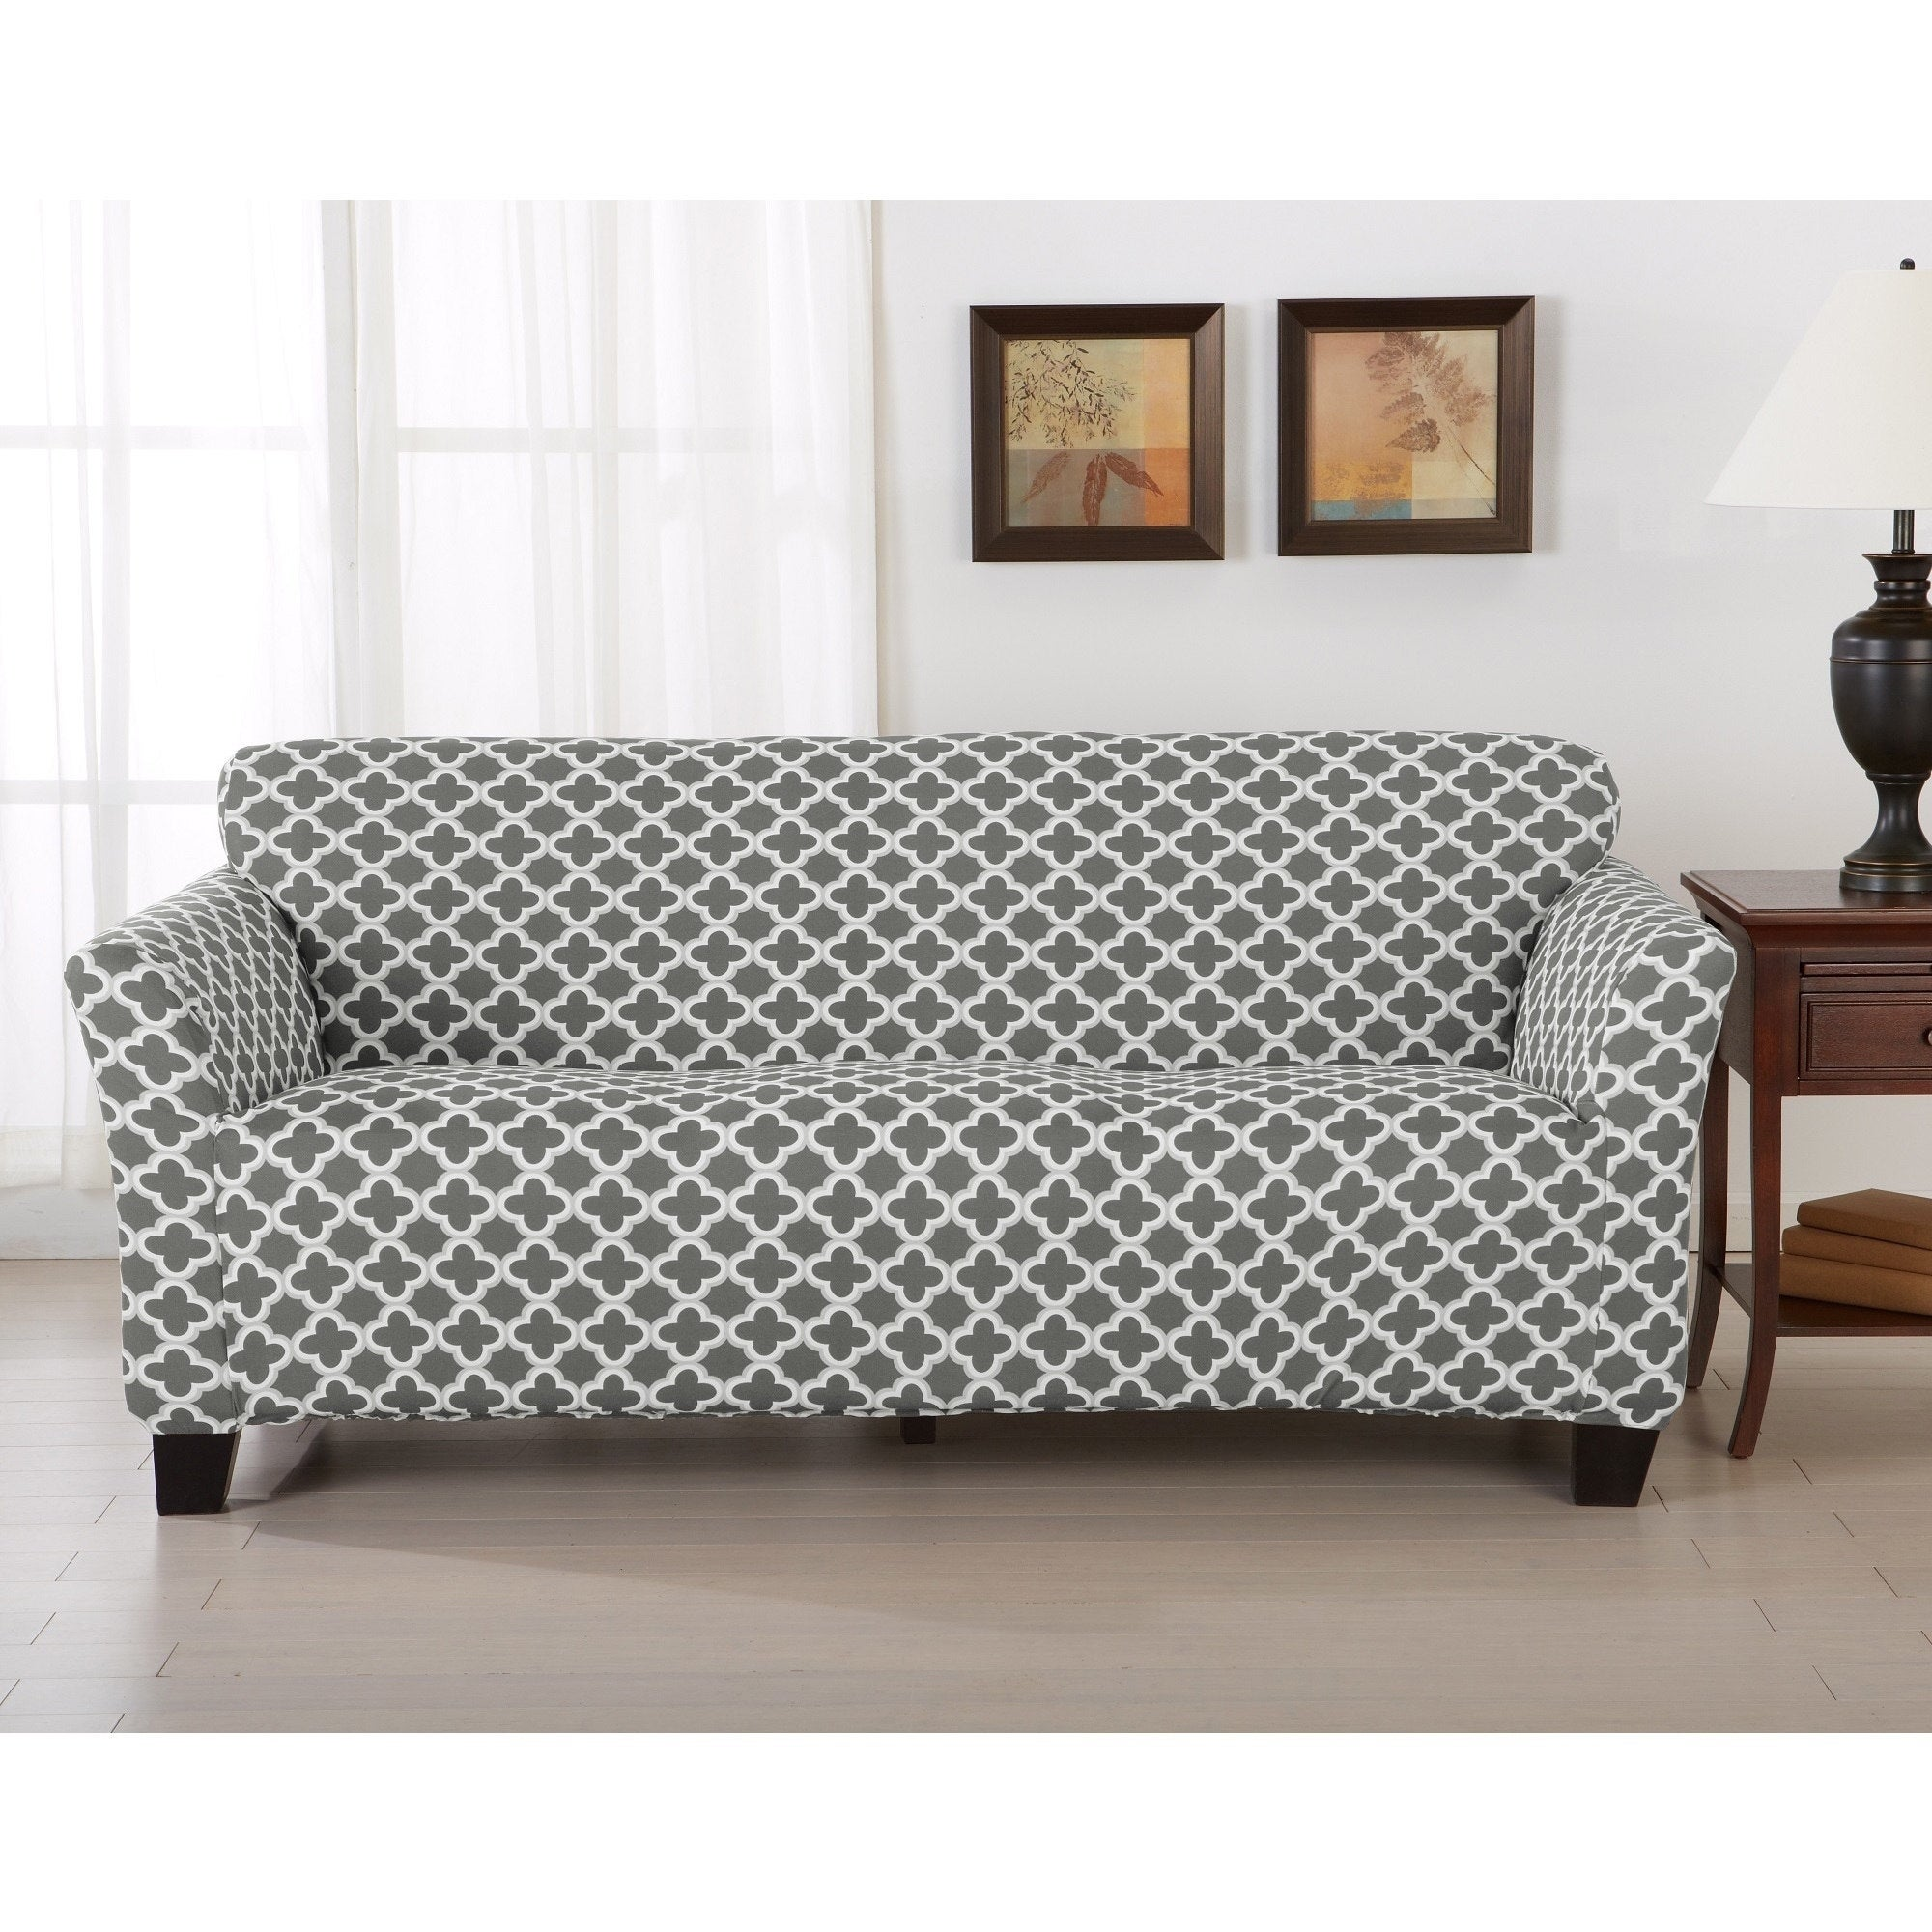 buy sofa couch slipcovers online at overstock com our best rh overstock com sofa sleeper couch covers sofa recliner couch covers